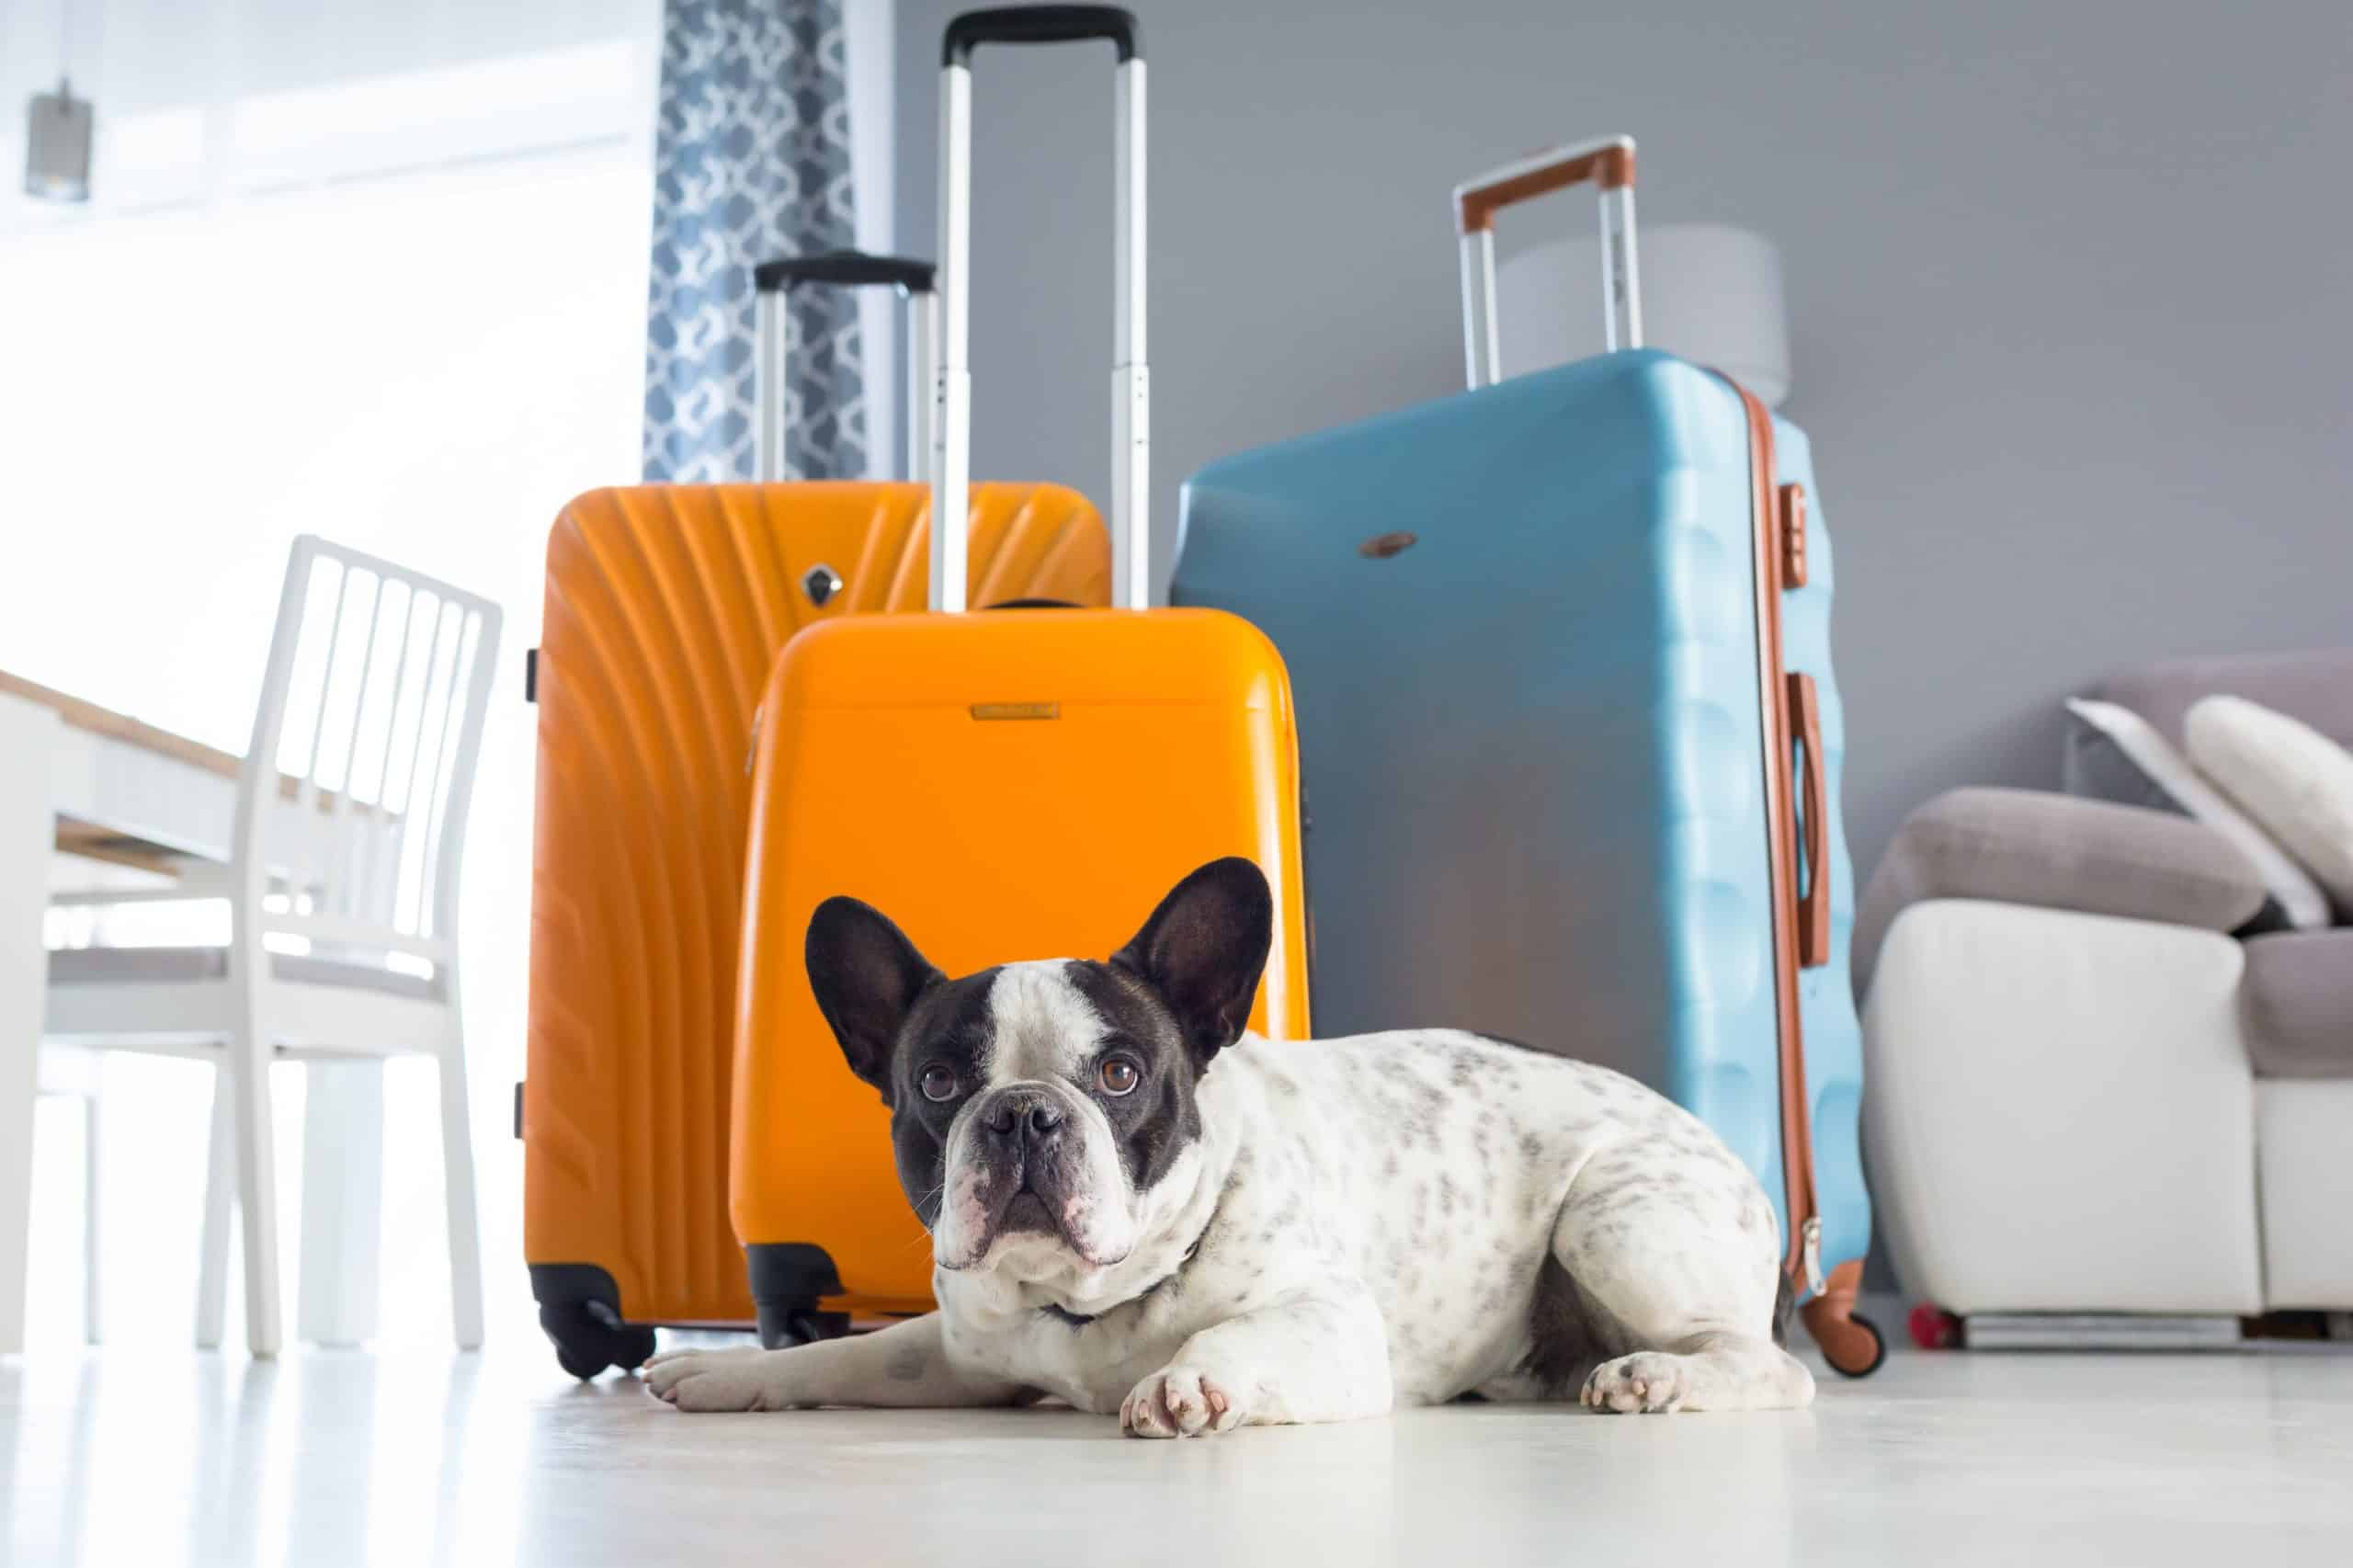 Nervous French Bulldog sits by suitcases. By preparing a dog sitter checklist, you'll make everyone feel better and more at ease: your dog, the sitter, and yourself.